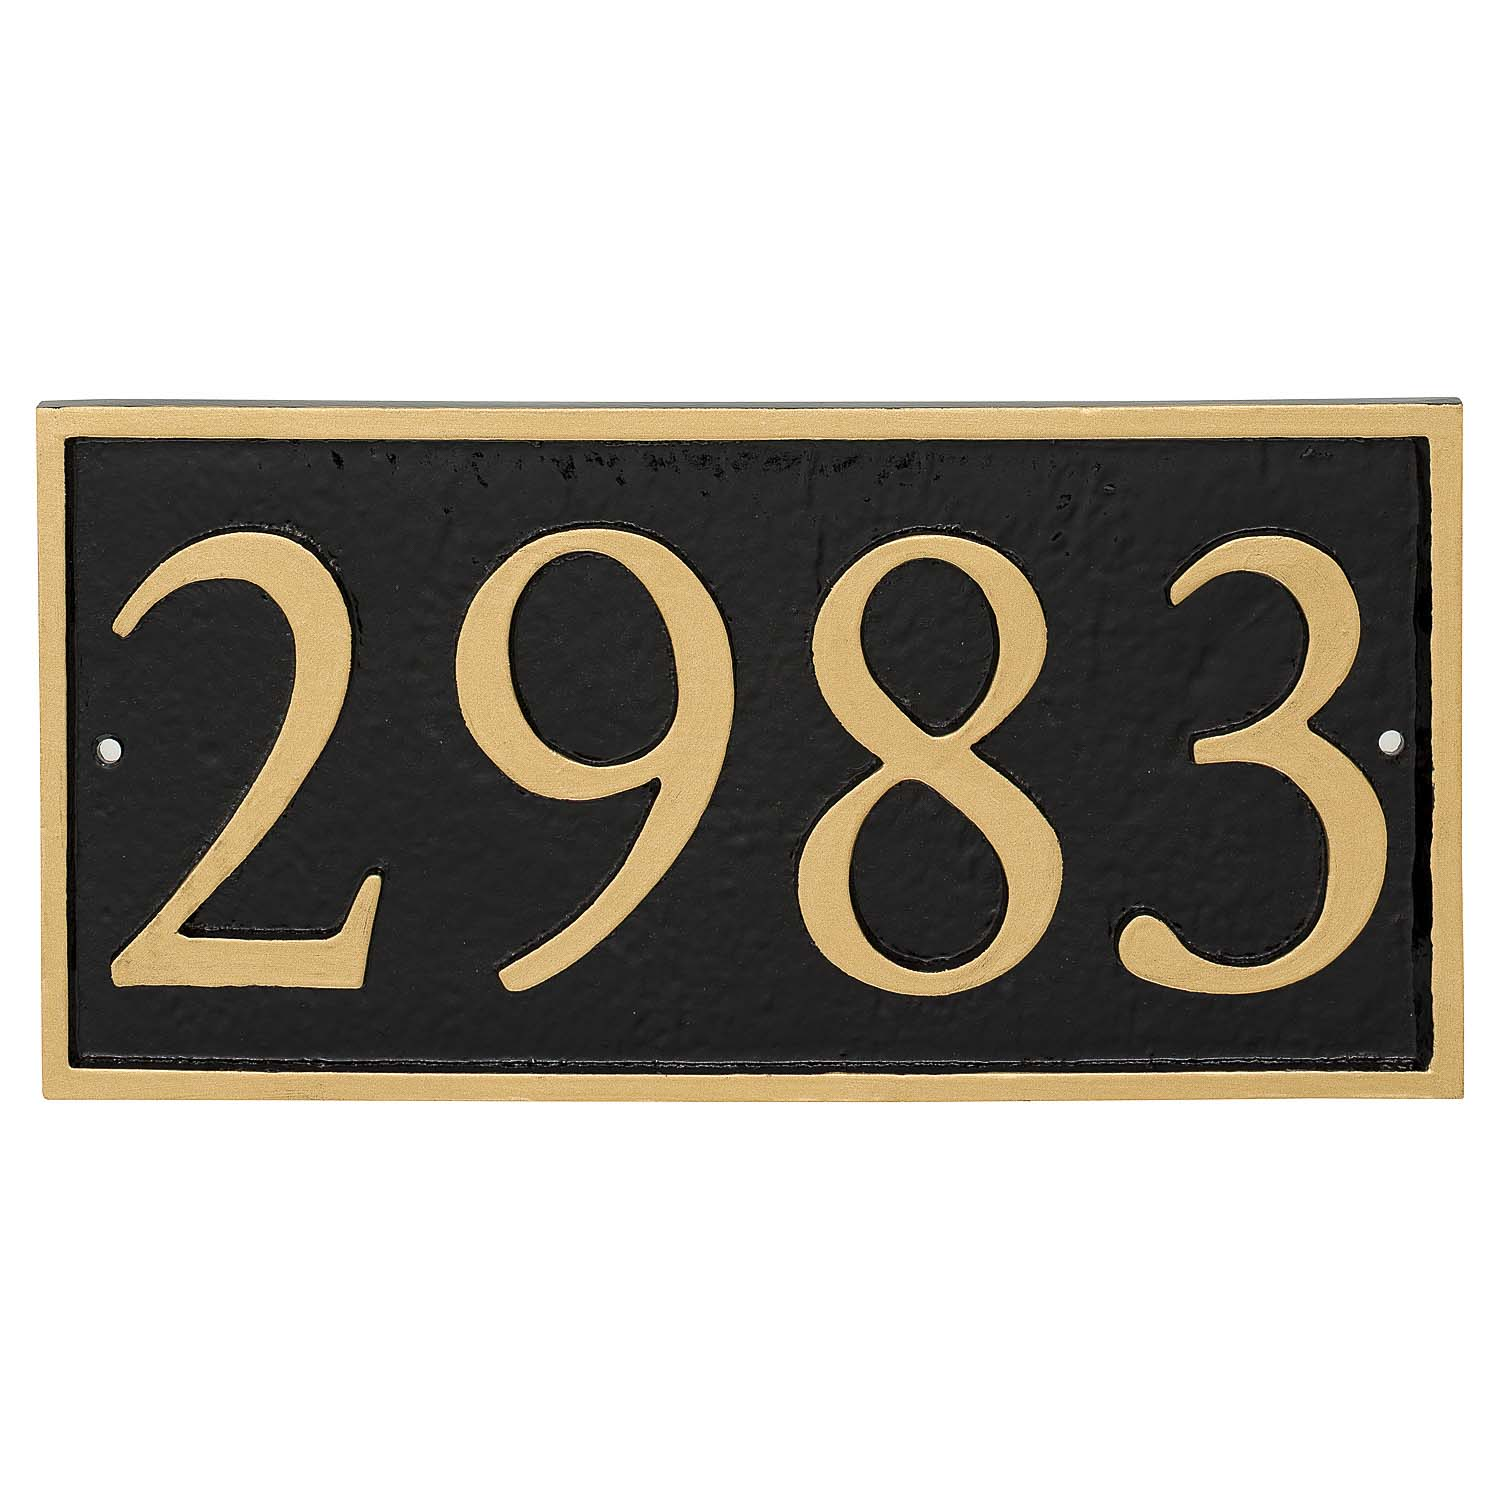 Rectangle Serif Economy Address Plaque (holds 4 characters)